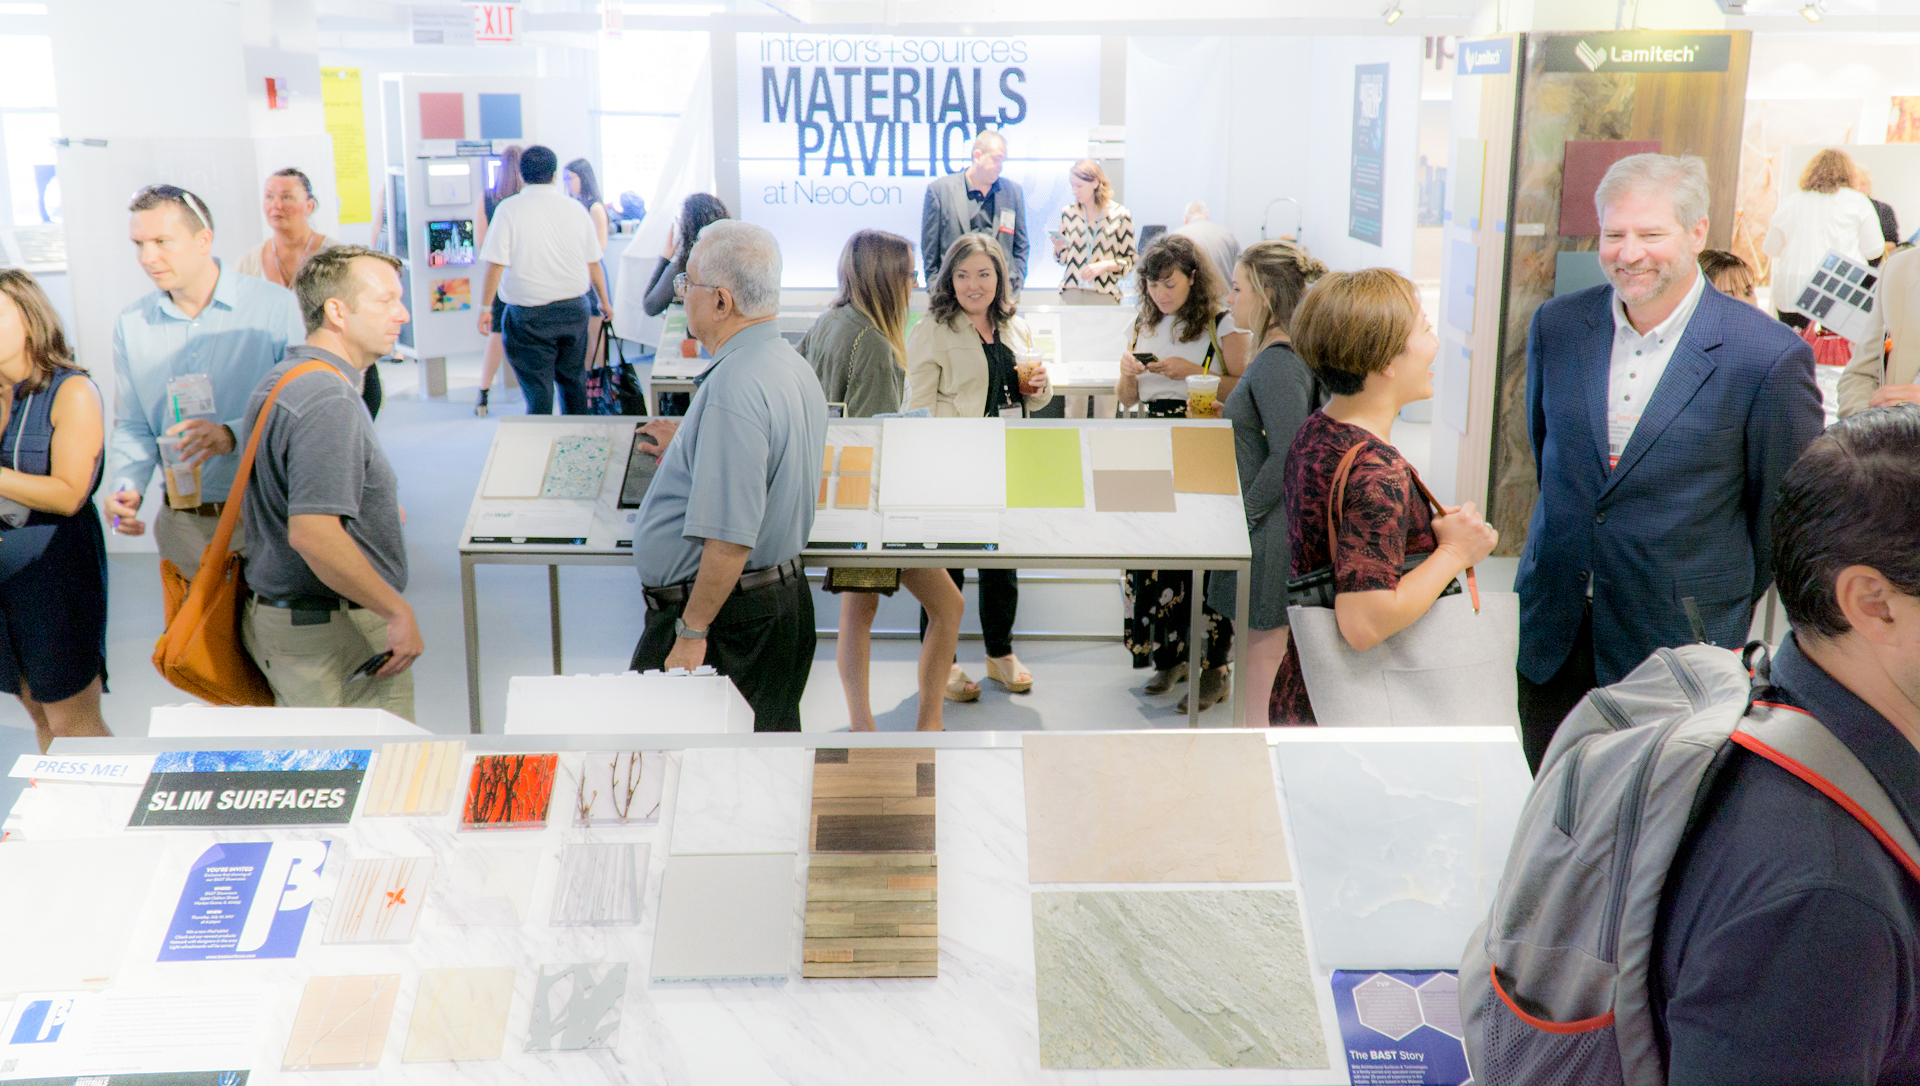 PUt your products in front of thousands of specifiers in the neocon materials pavilion